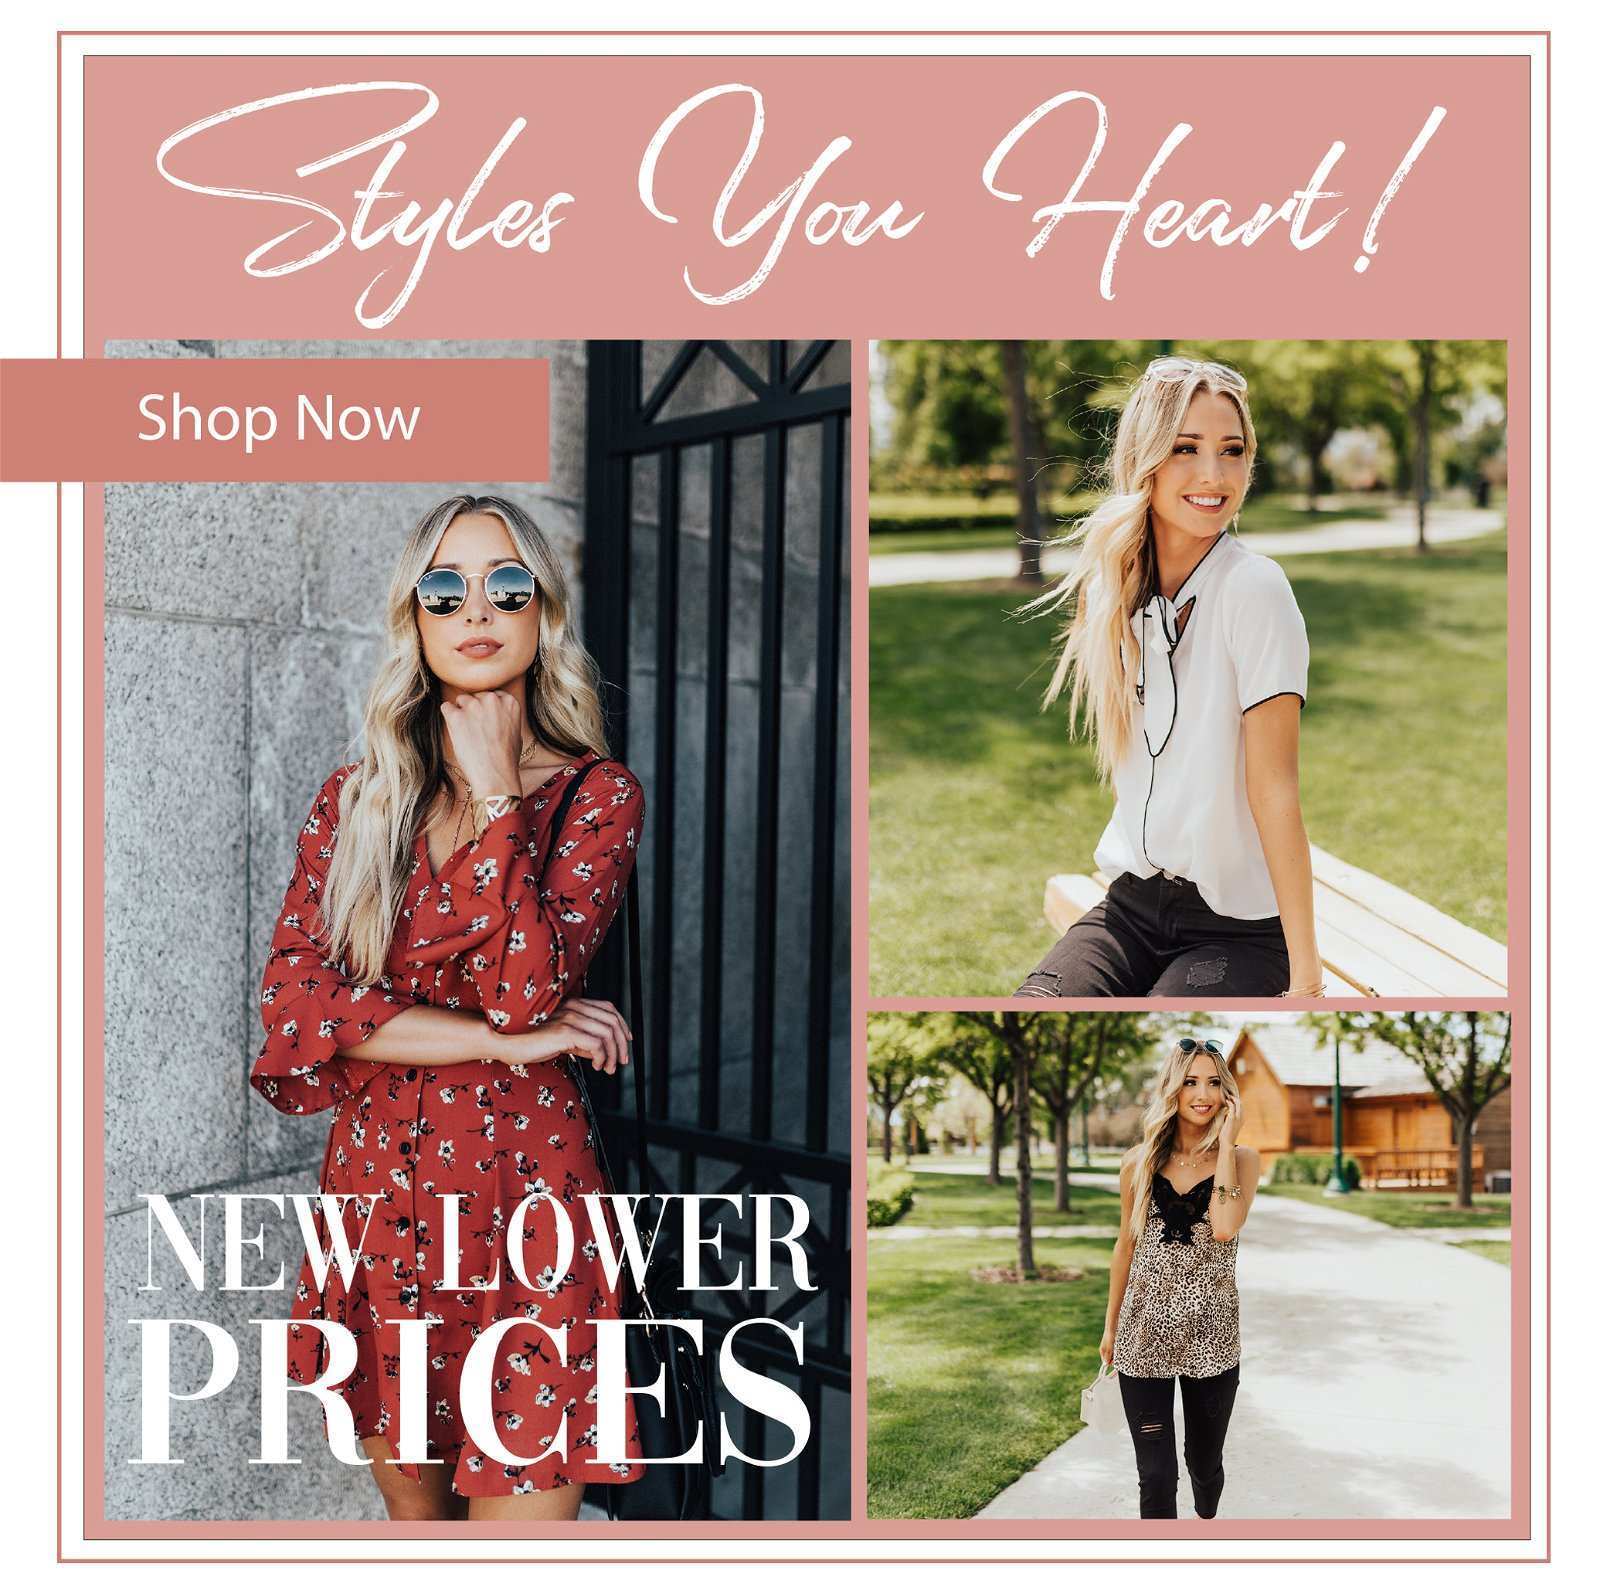 Styles you heart! New marked down prices